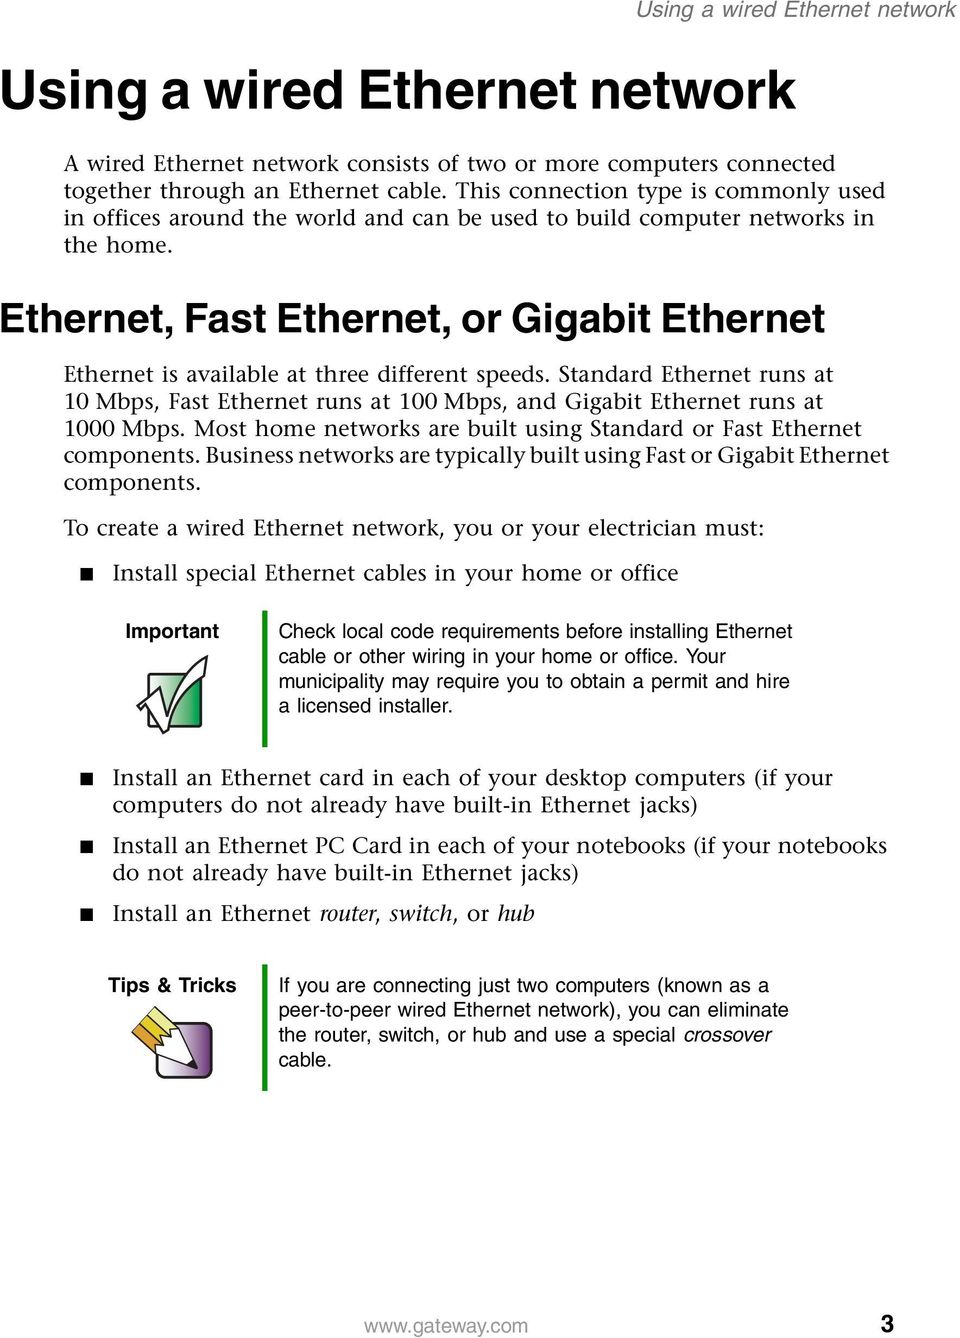 Ethernet, Fast Ethernet, or Gigabit Ethernet Ethernet is available at three different speeds. Standard Ethernet runs at 10 Mbps, Fast Ethernet runs at 100 Mbps, and Gigabit Ethernet runs at 1000 Mbps.